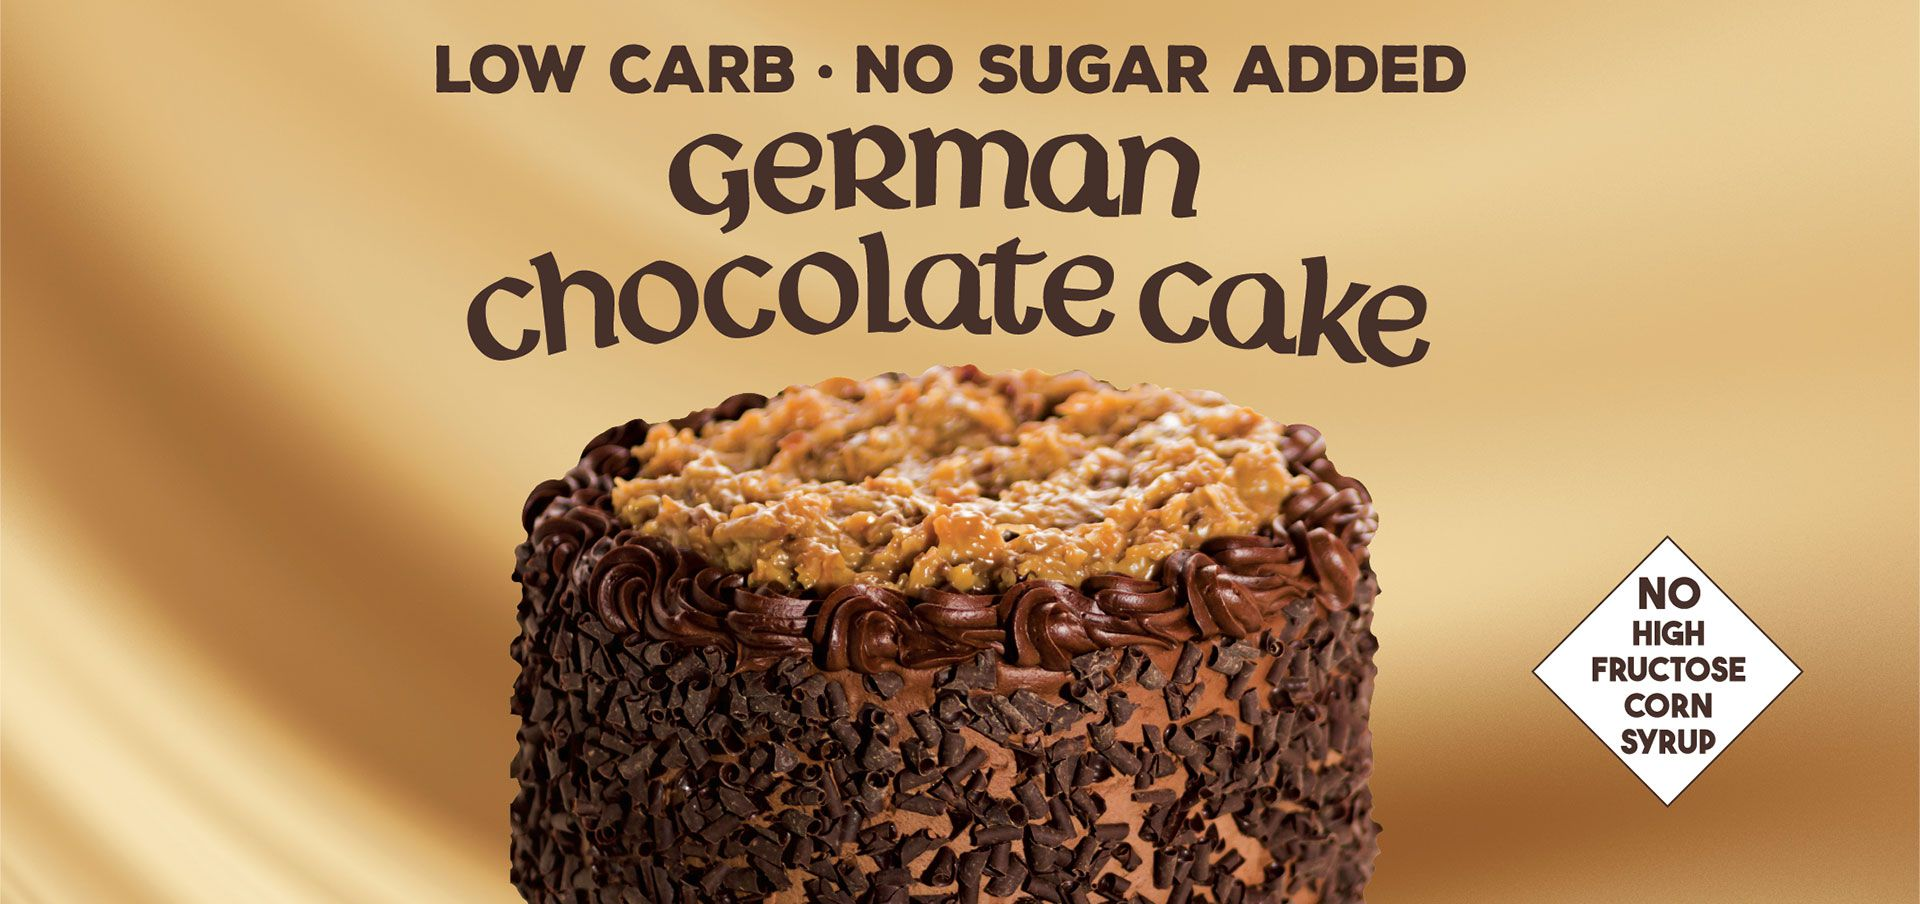 Wow Cow german chocolate cake label image